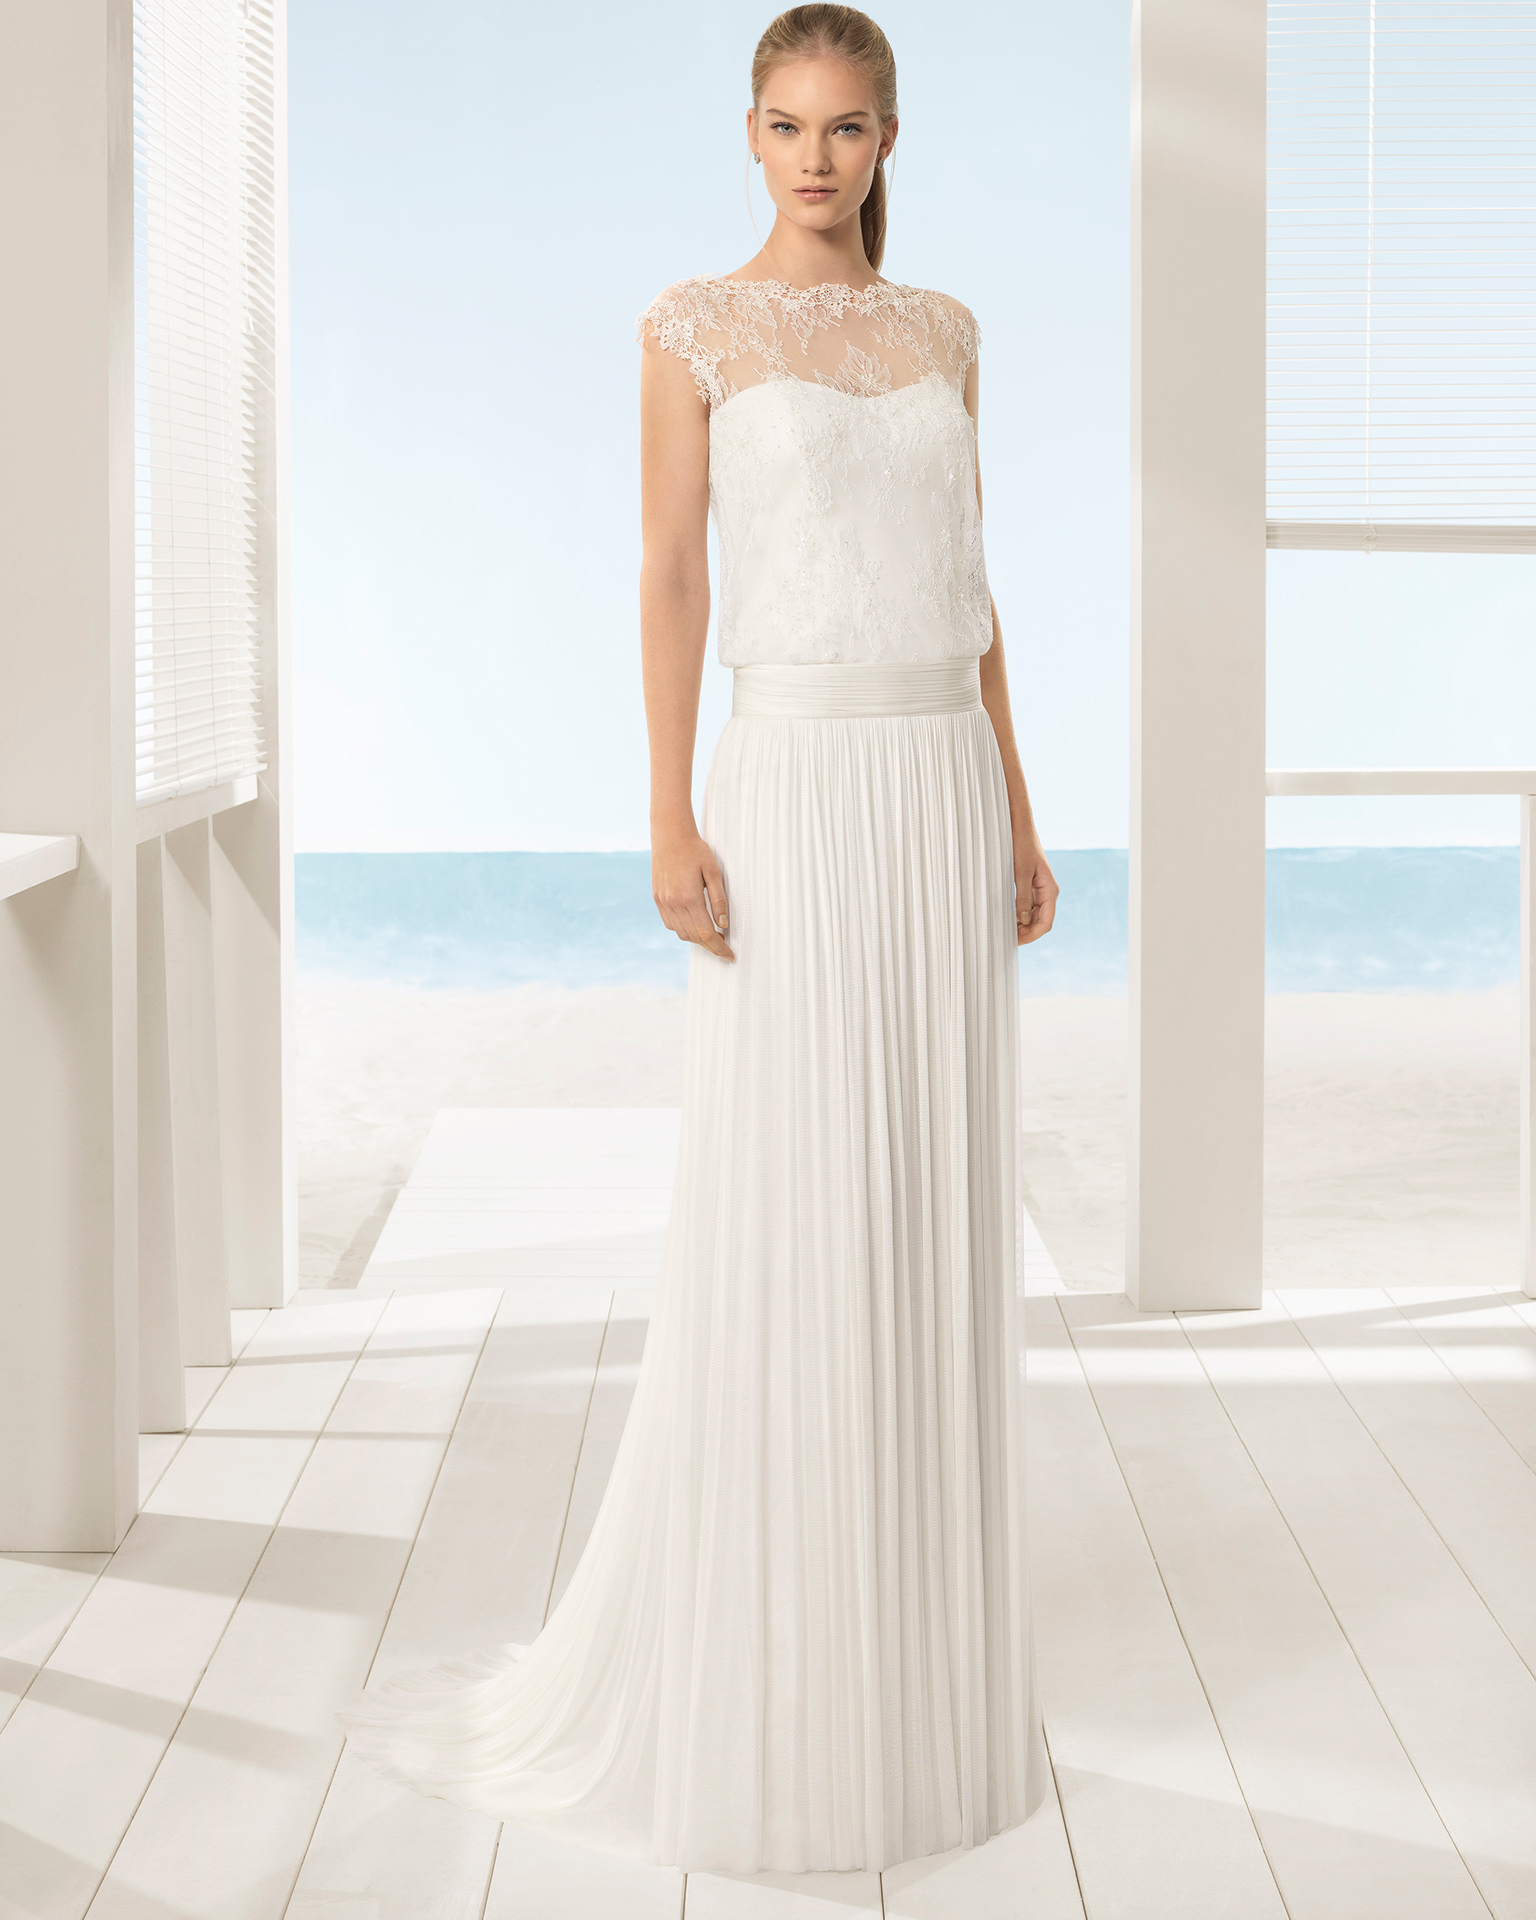 Boho-style beaded lace and silk mousseline wedding dress with bloused bodice and sweetheart neckline with illusion overlay.